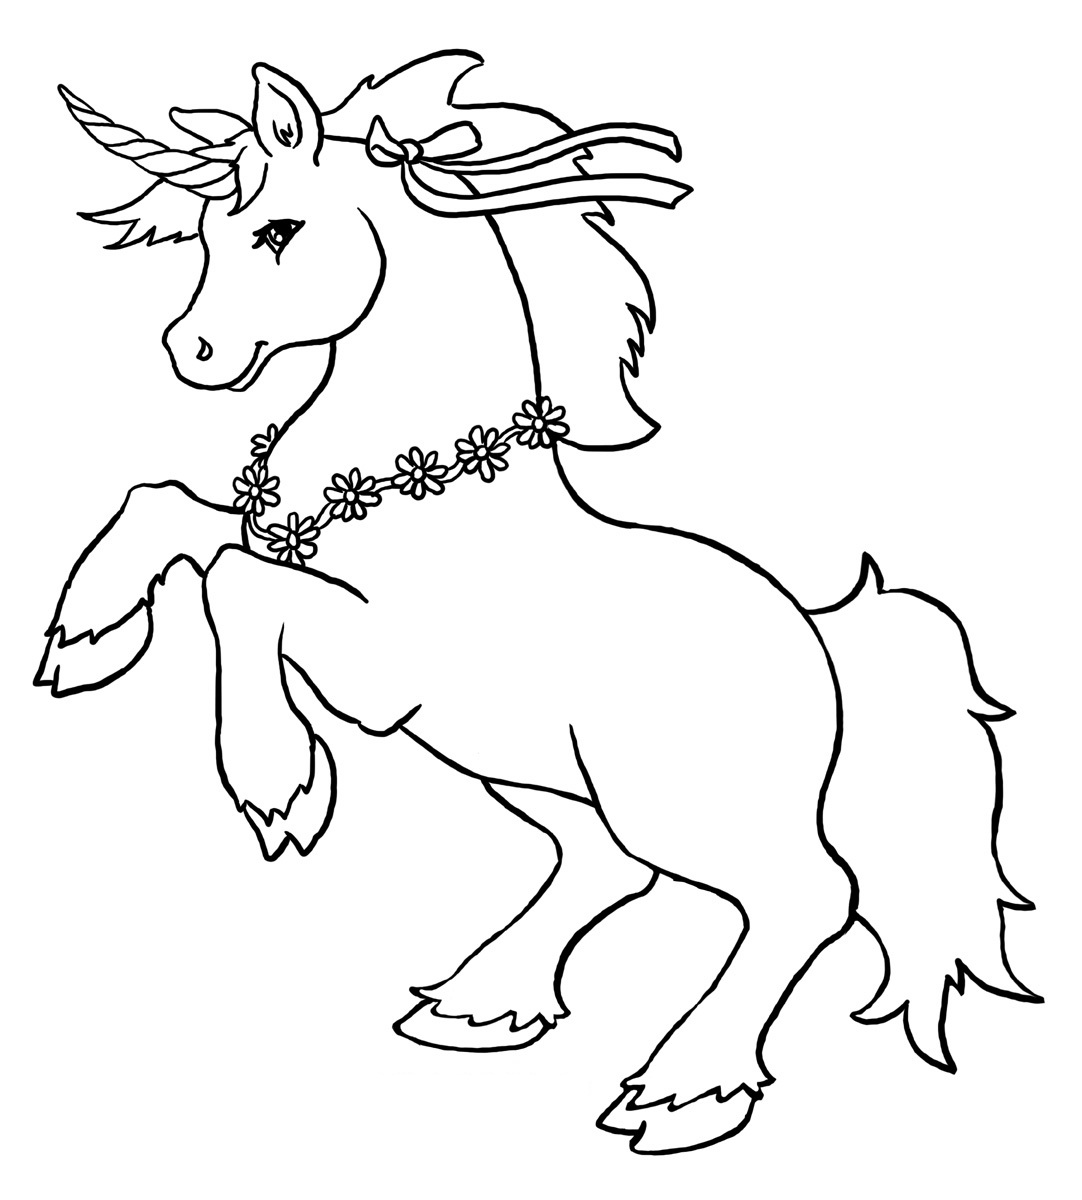 free printable unicorn coloring pages for toddlers | Printable ... | 1200x1082